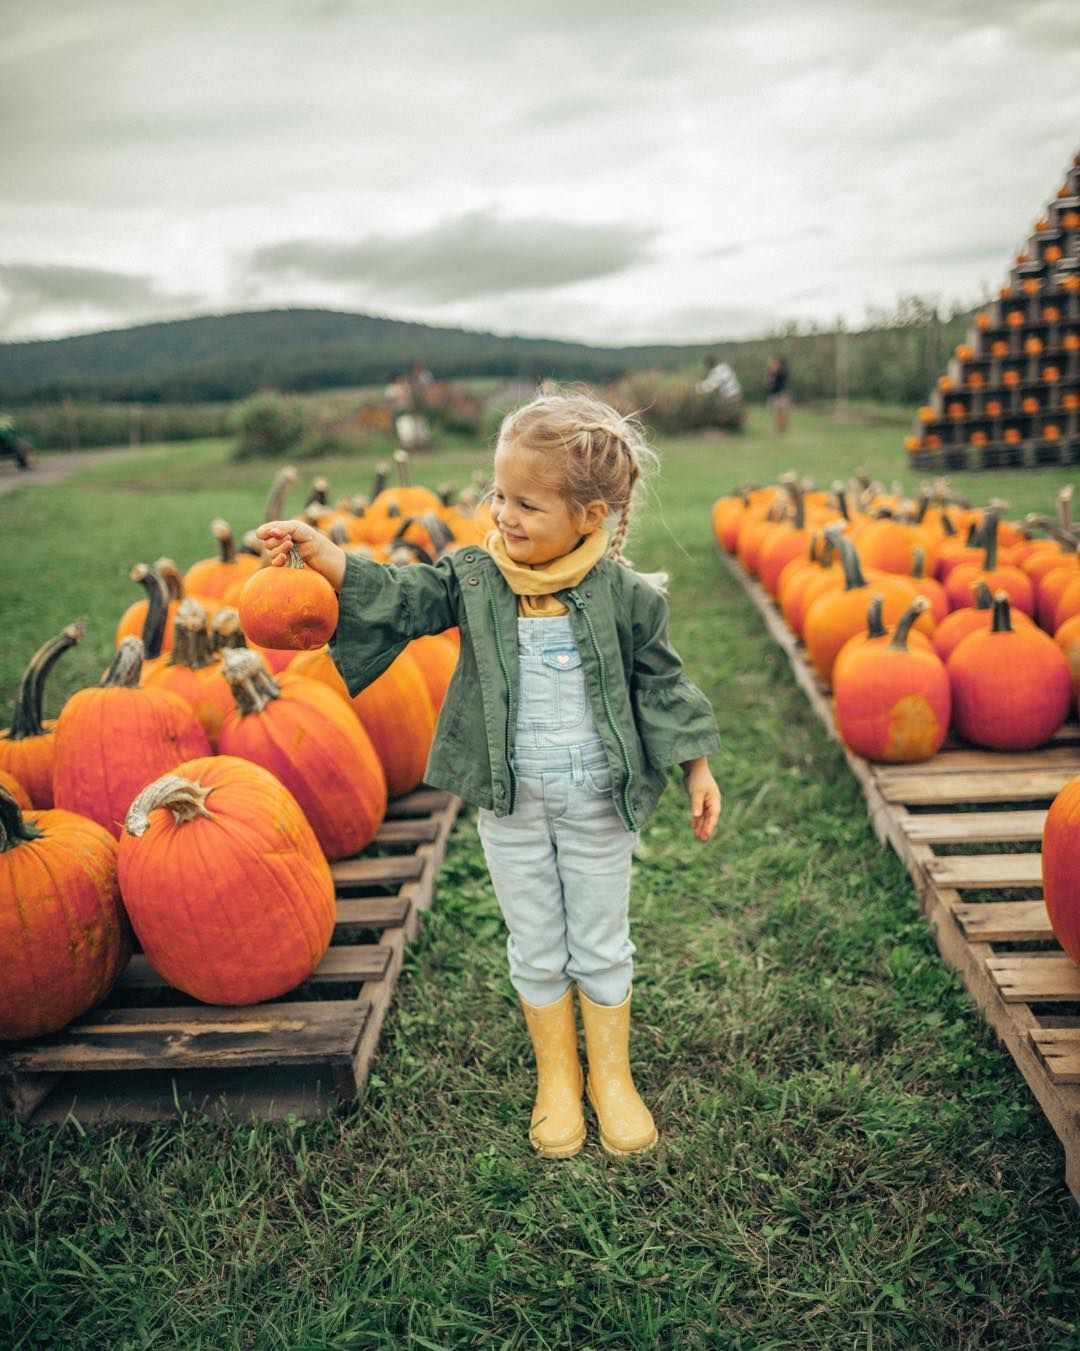 Cute Fall Photo Shoot Pumpkin Patch Pictures Fun Fall Activities For Kids Toddler Outfit Pumpkin Patch Pictures Pumpkin Patch Outfit Kids Toddler Girl Fall